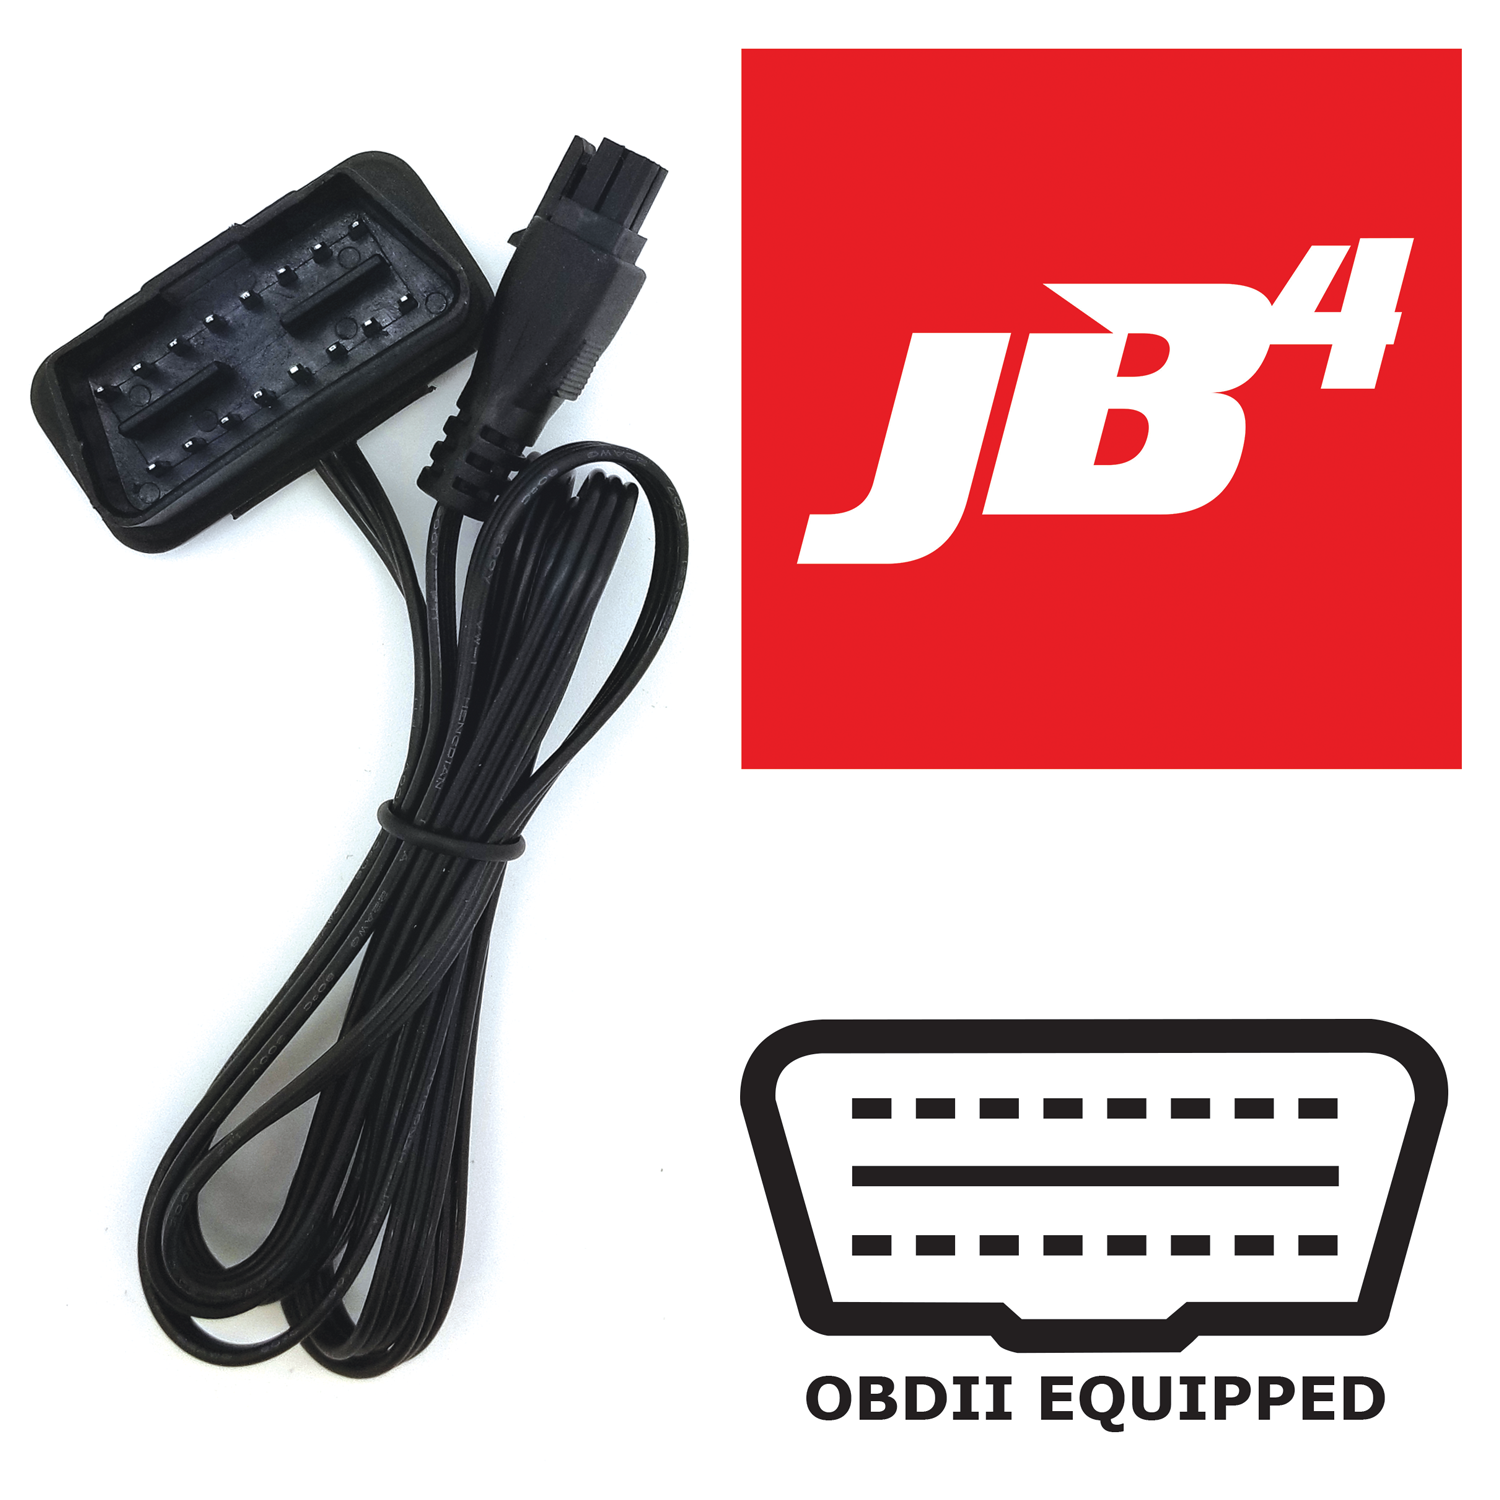 JB4 Tuner for BMW N20 / N26 Engines – Burger Motorsports, Inc